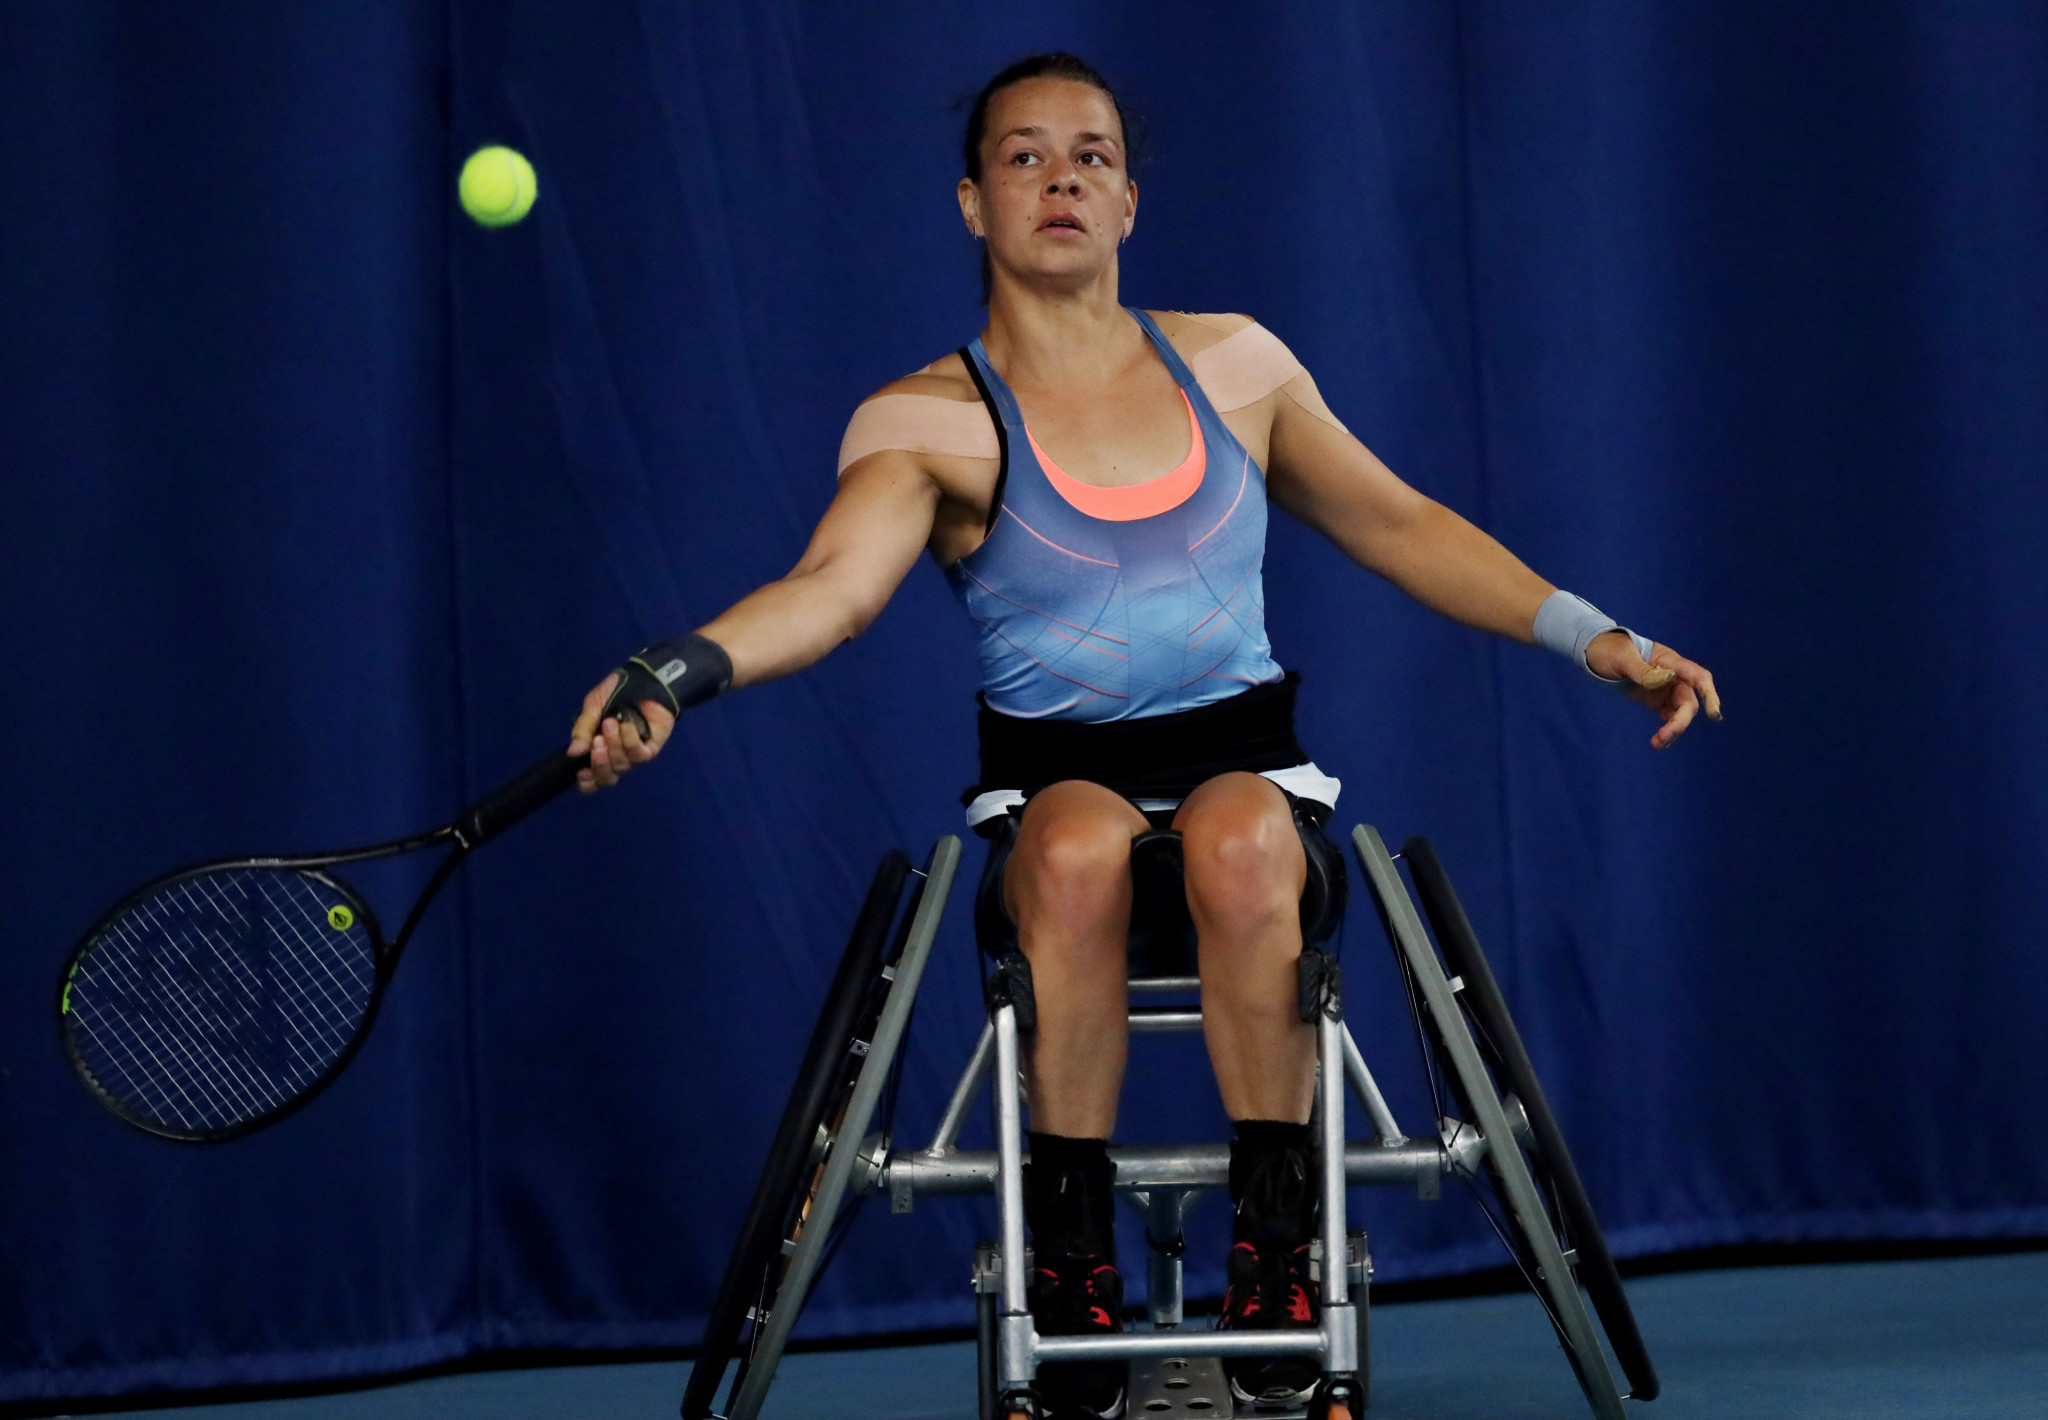 The Netherlands' Marjolein Buis was a finalist in last week's British Wheelchair Tennis Open in Nottingham ©Getty Images